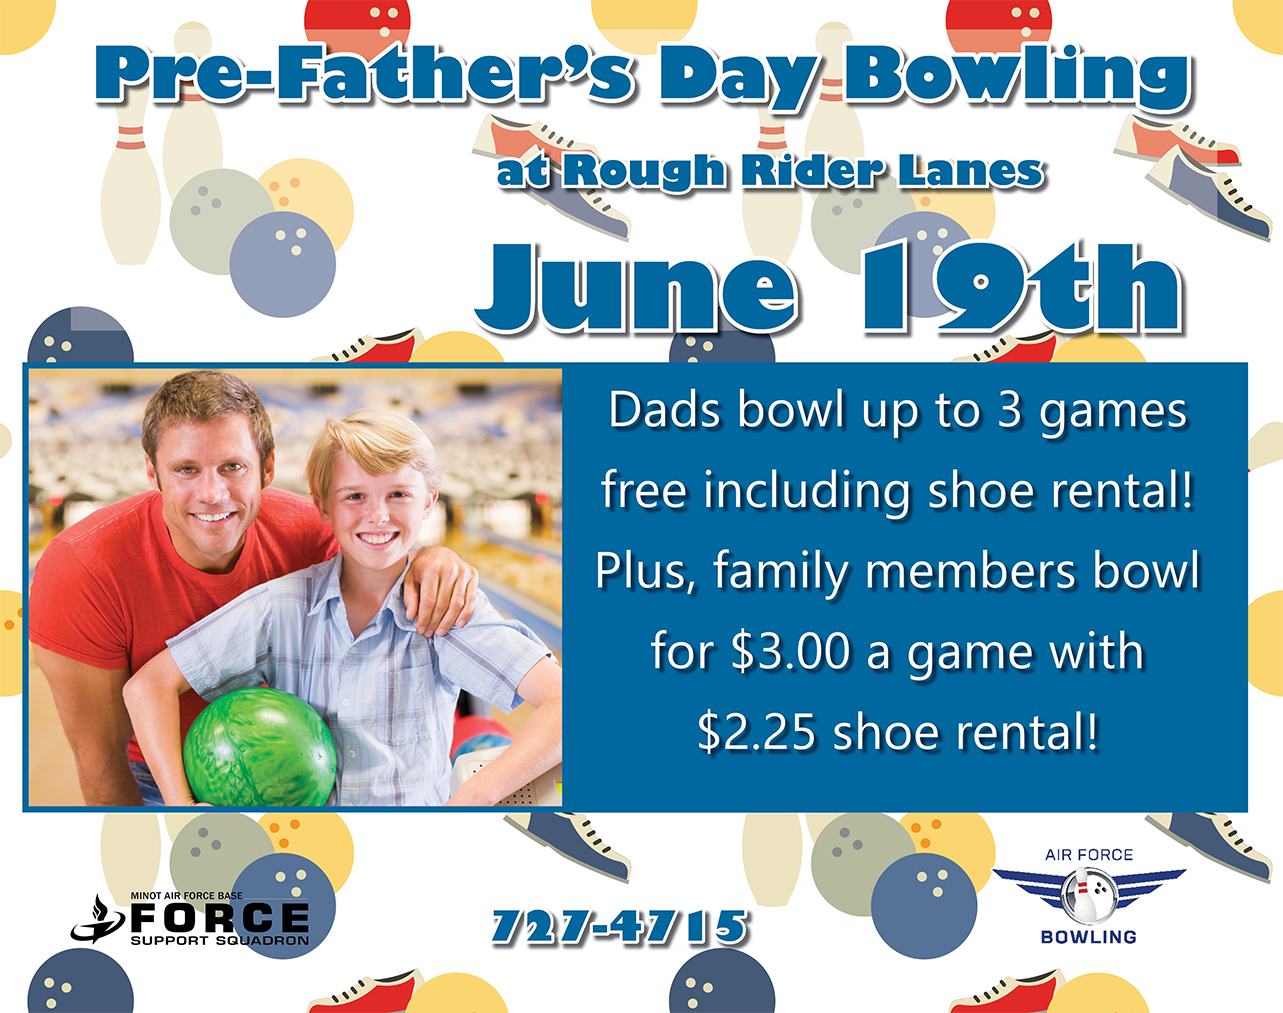 Pre-Father's Day Bowling Special